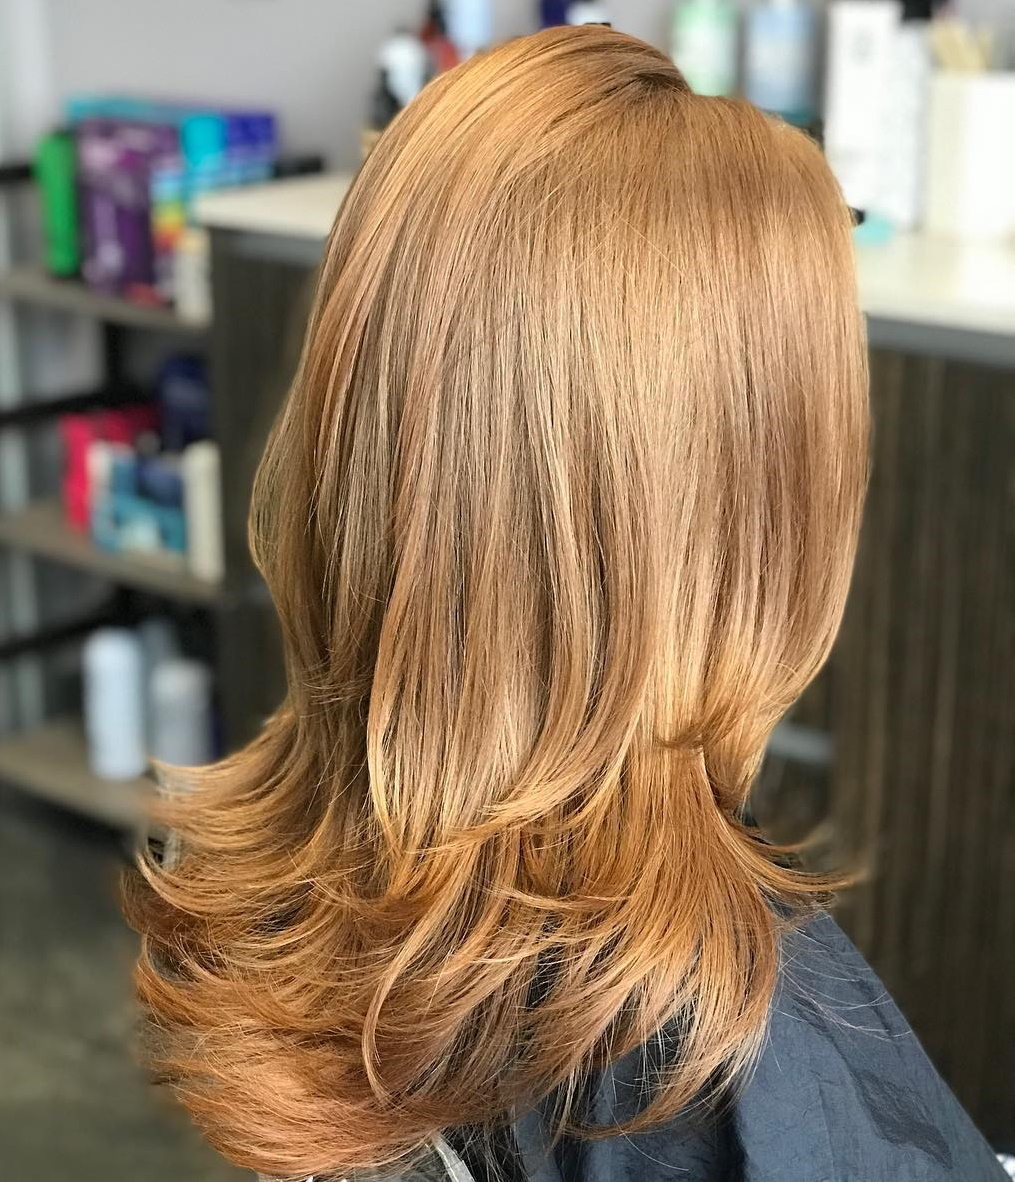 Ginger Red Hair with Flipped Up Ends